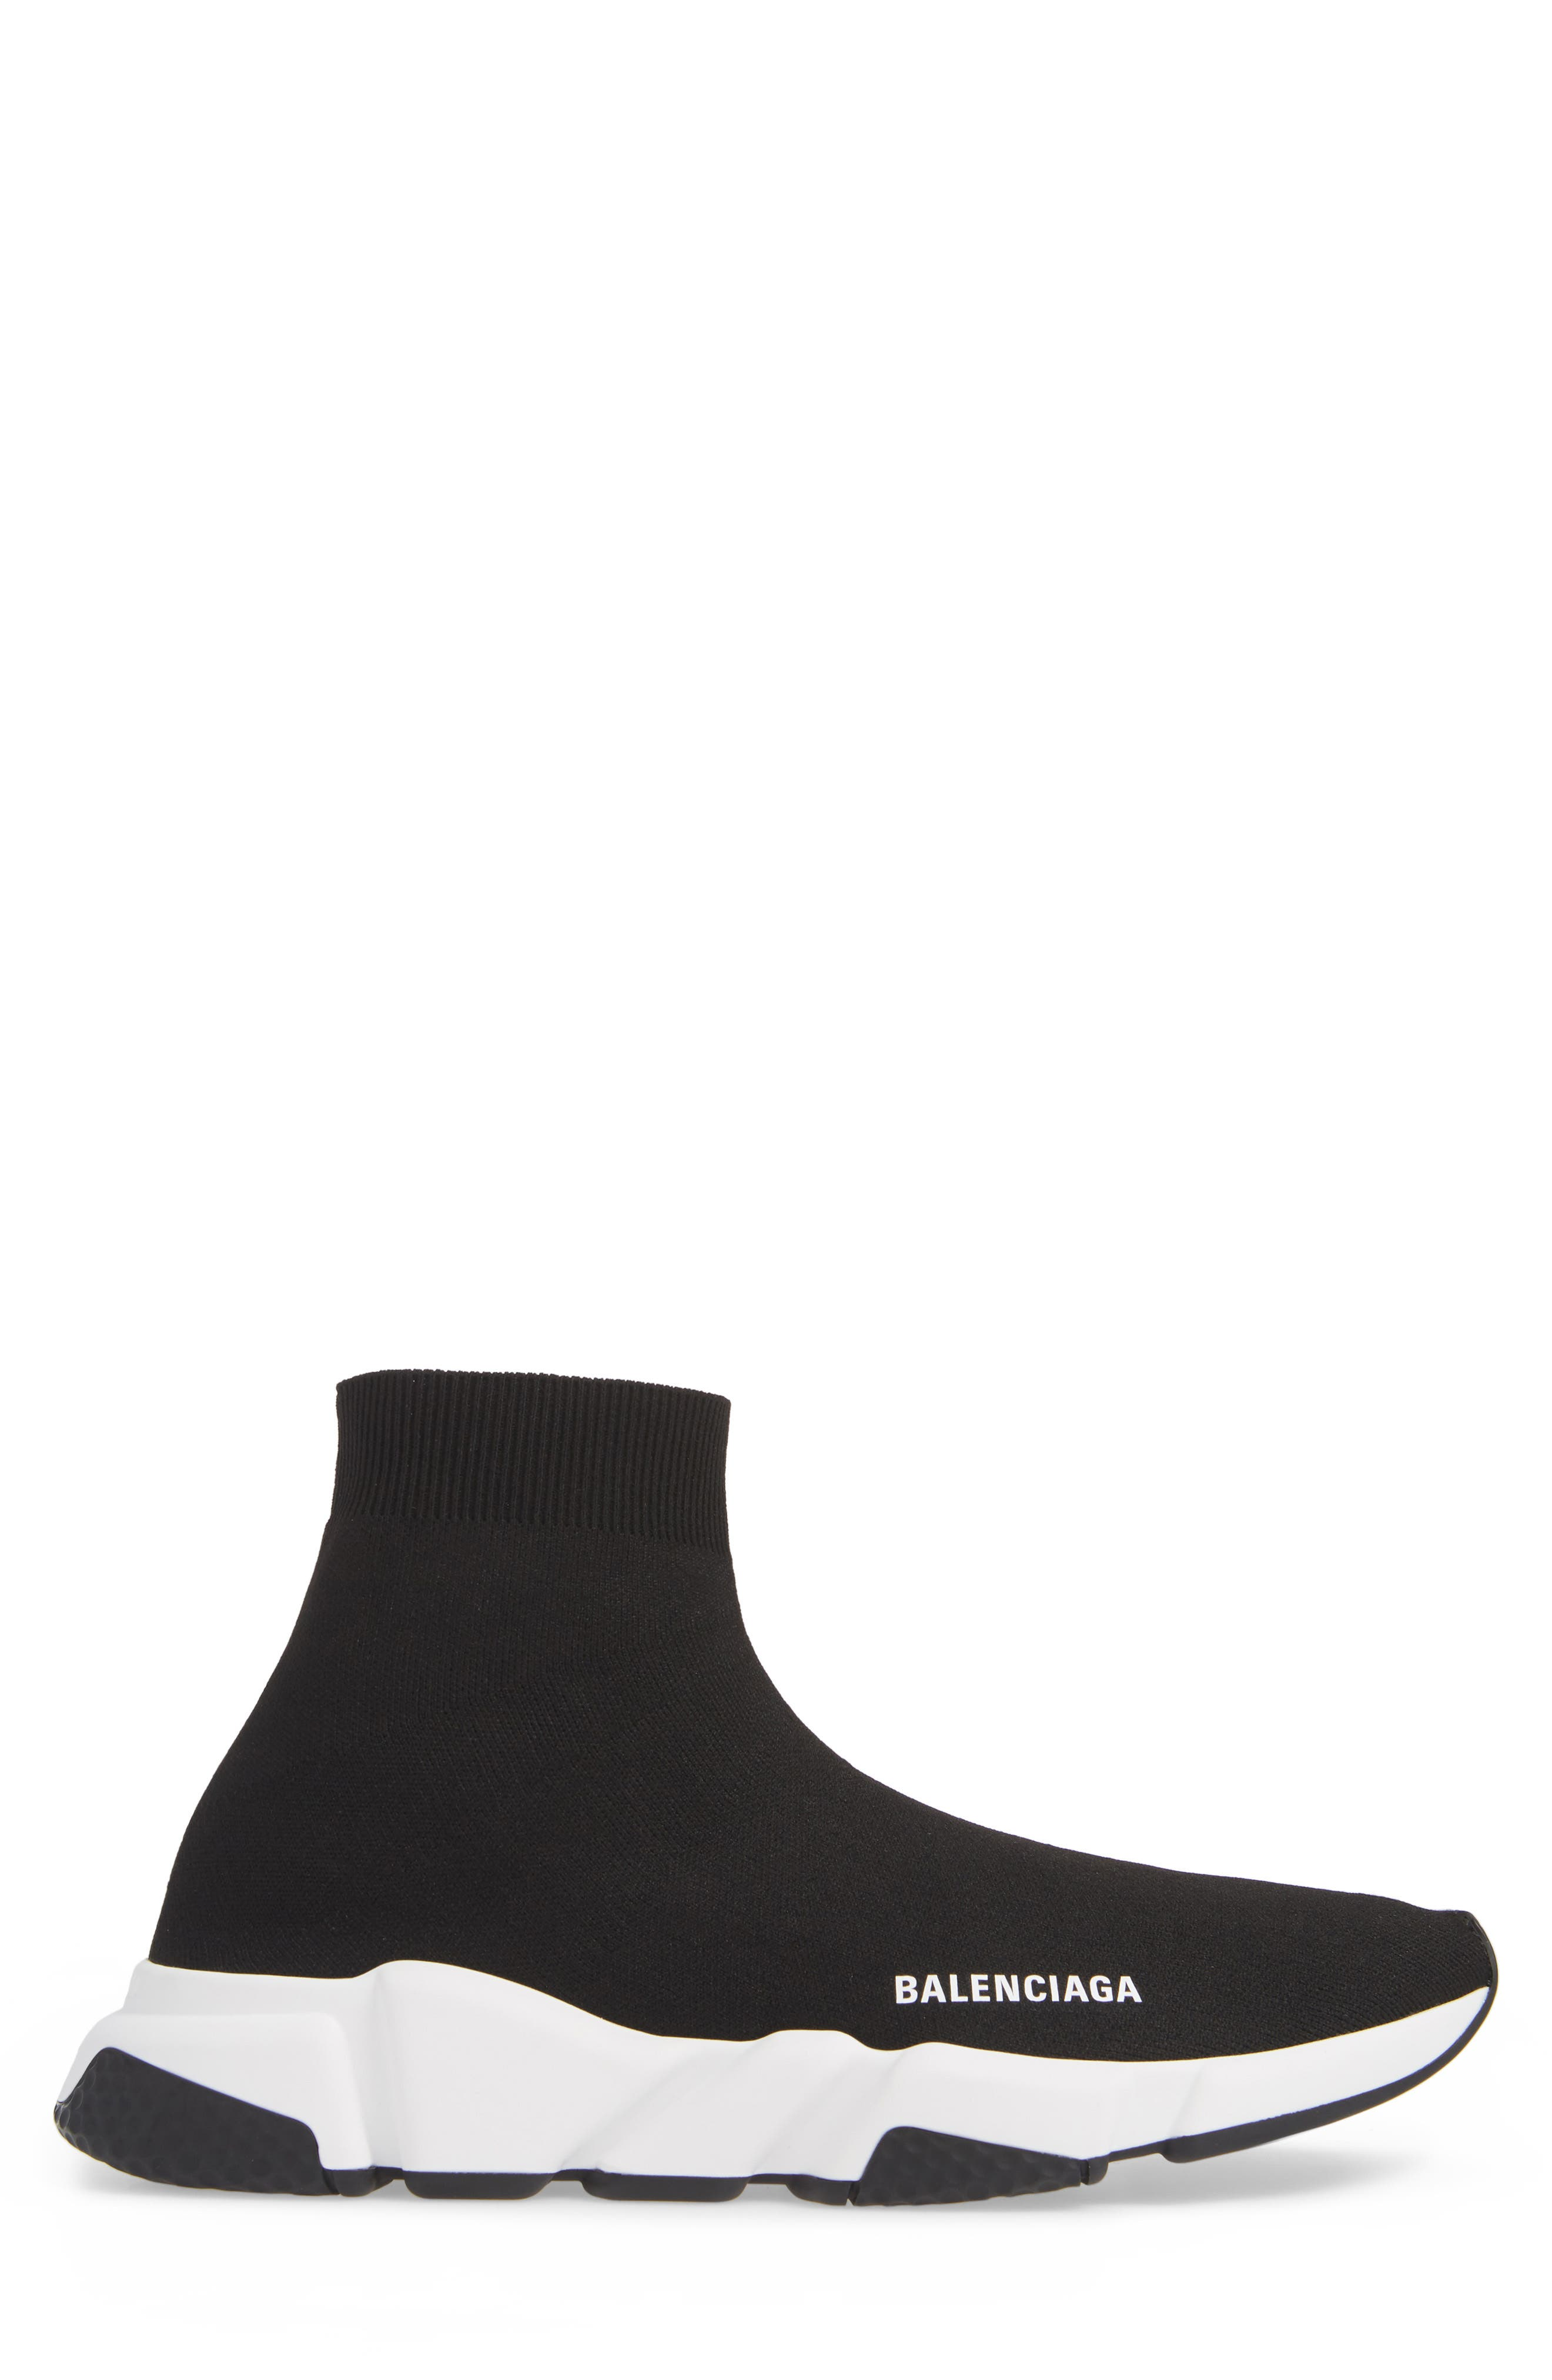 BALENCIAGA, Speed High Slip-On, Alternate thumbnail 3, color, NOIR